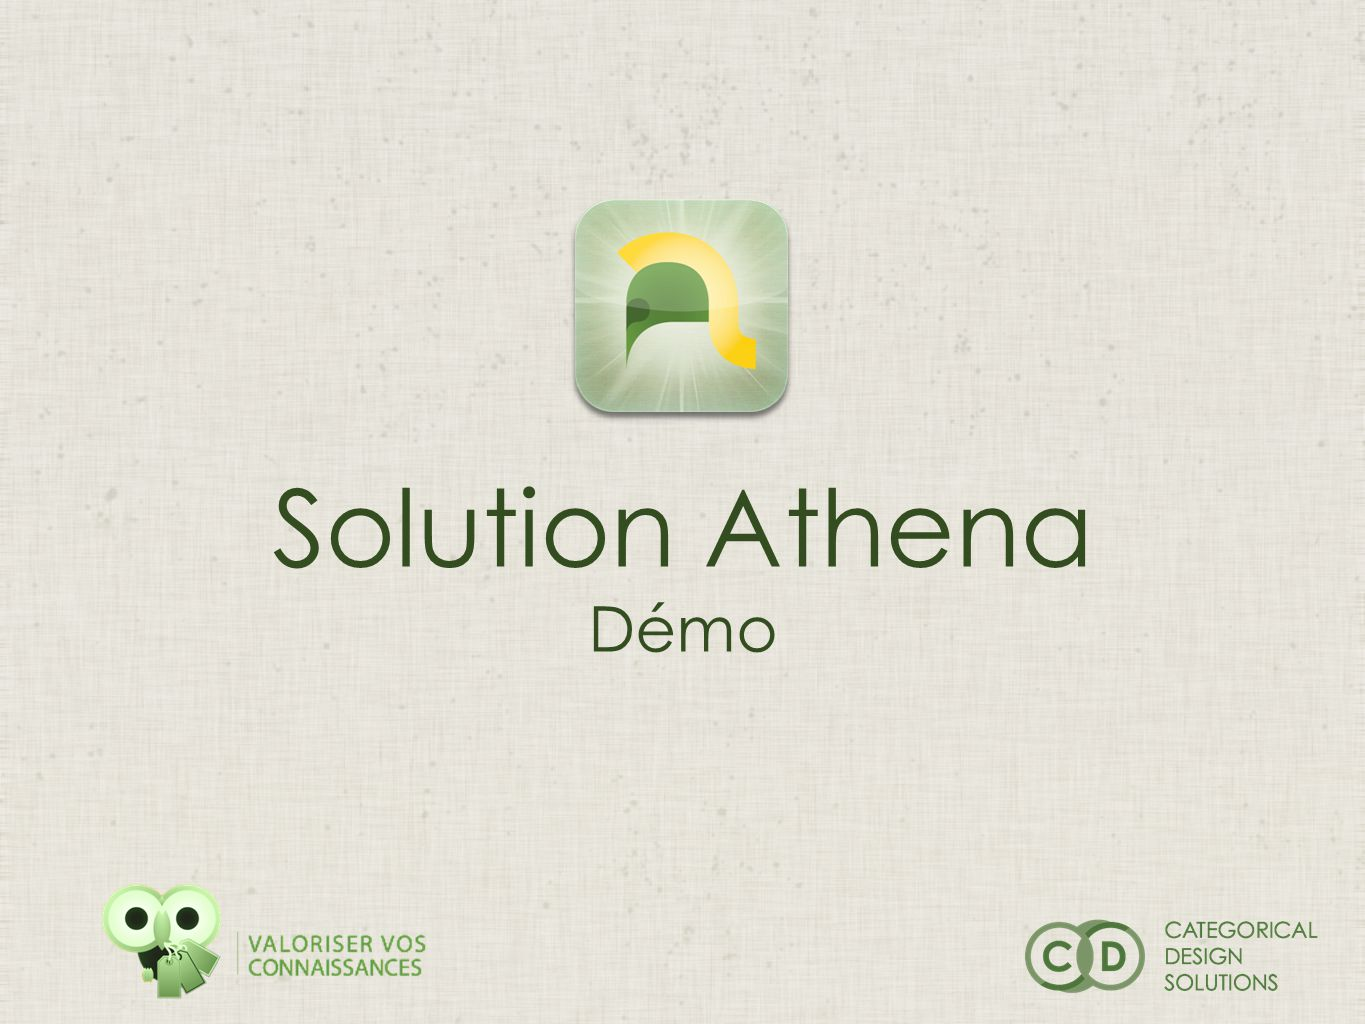 Solution Athena Démo